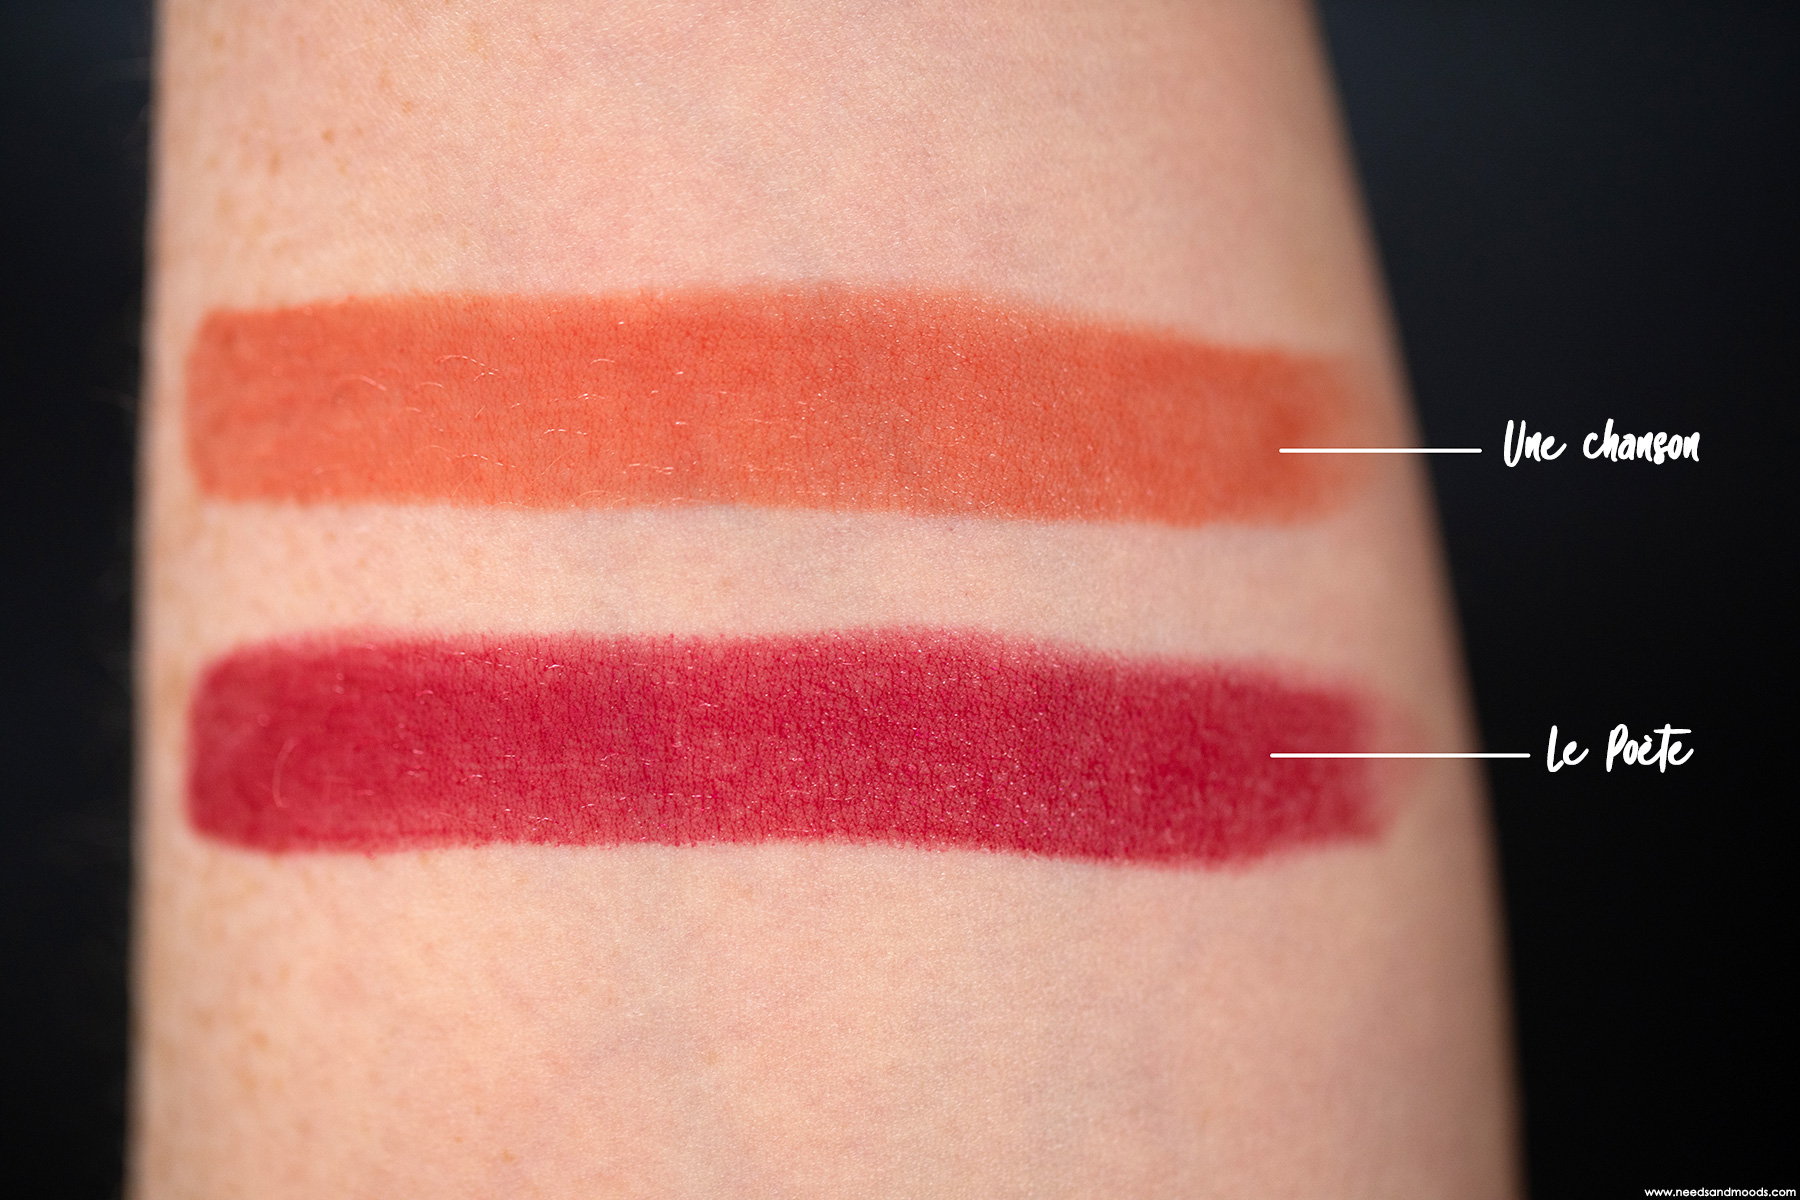 paul-joe-beaute-rouge-levres-cs-swatch